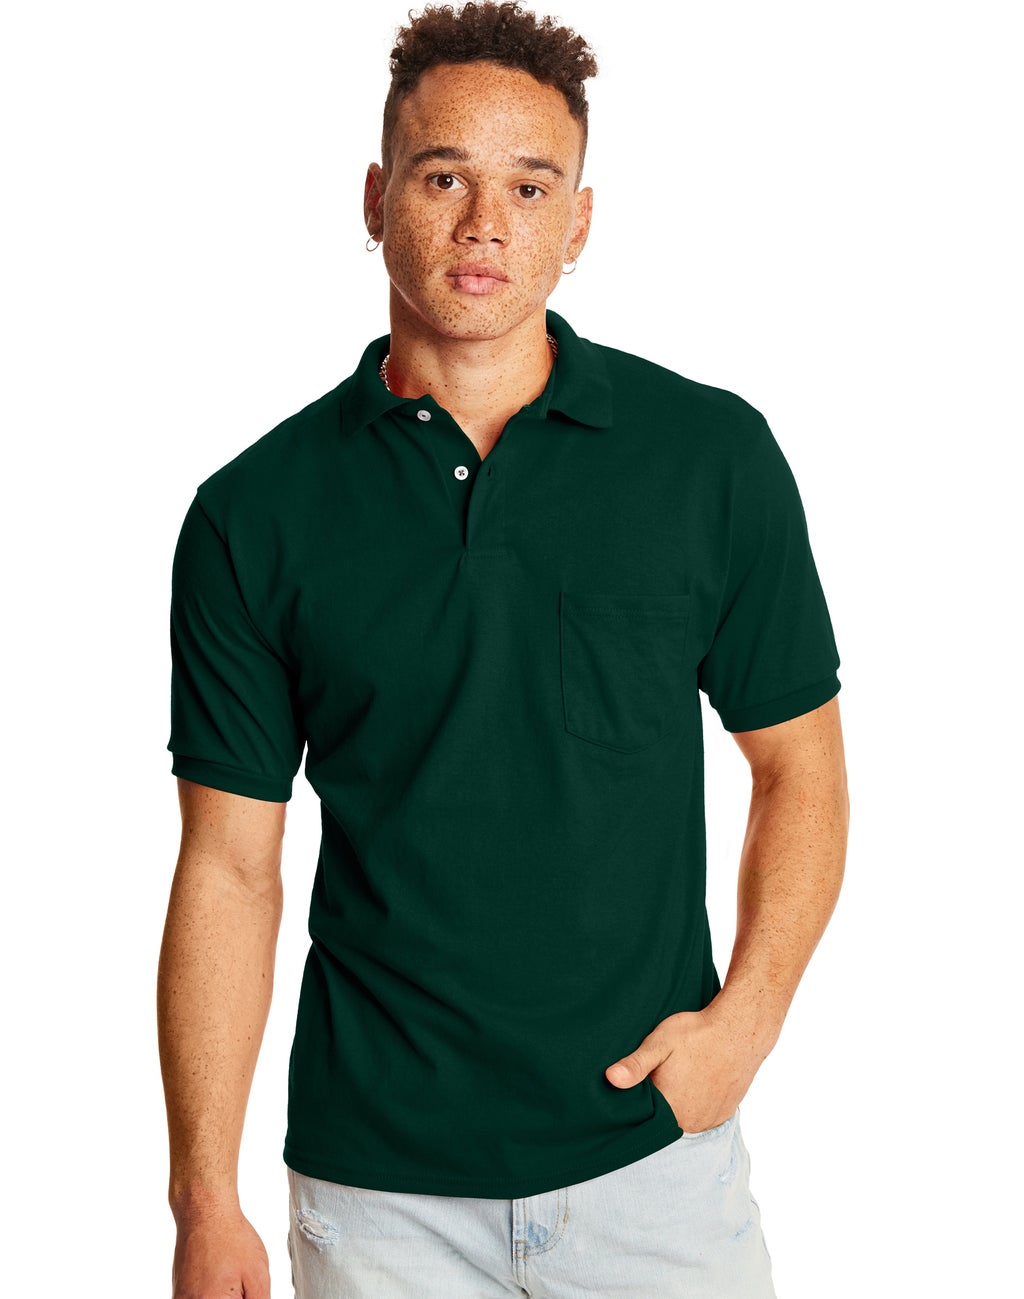 3-Pack Hanes Men's CottonBlend EcoSmart Jersey Polo with Pocket